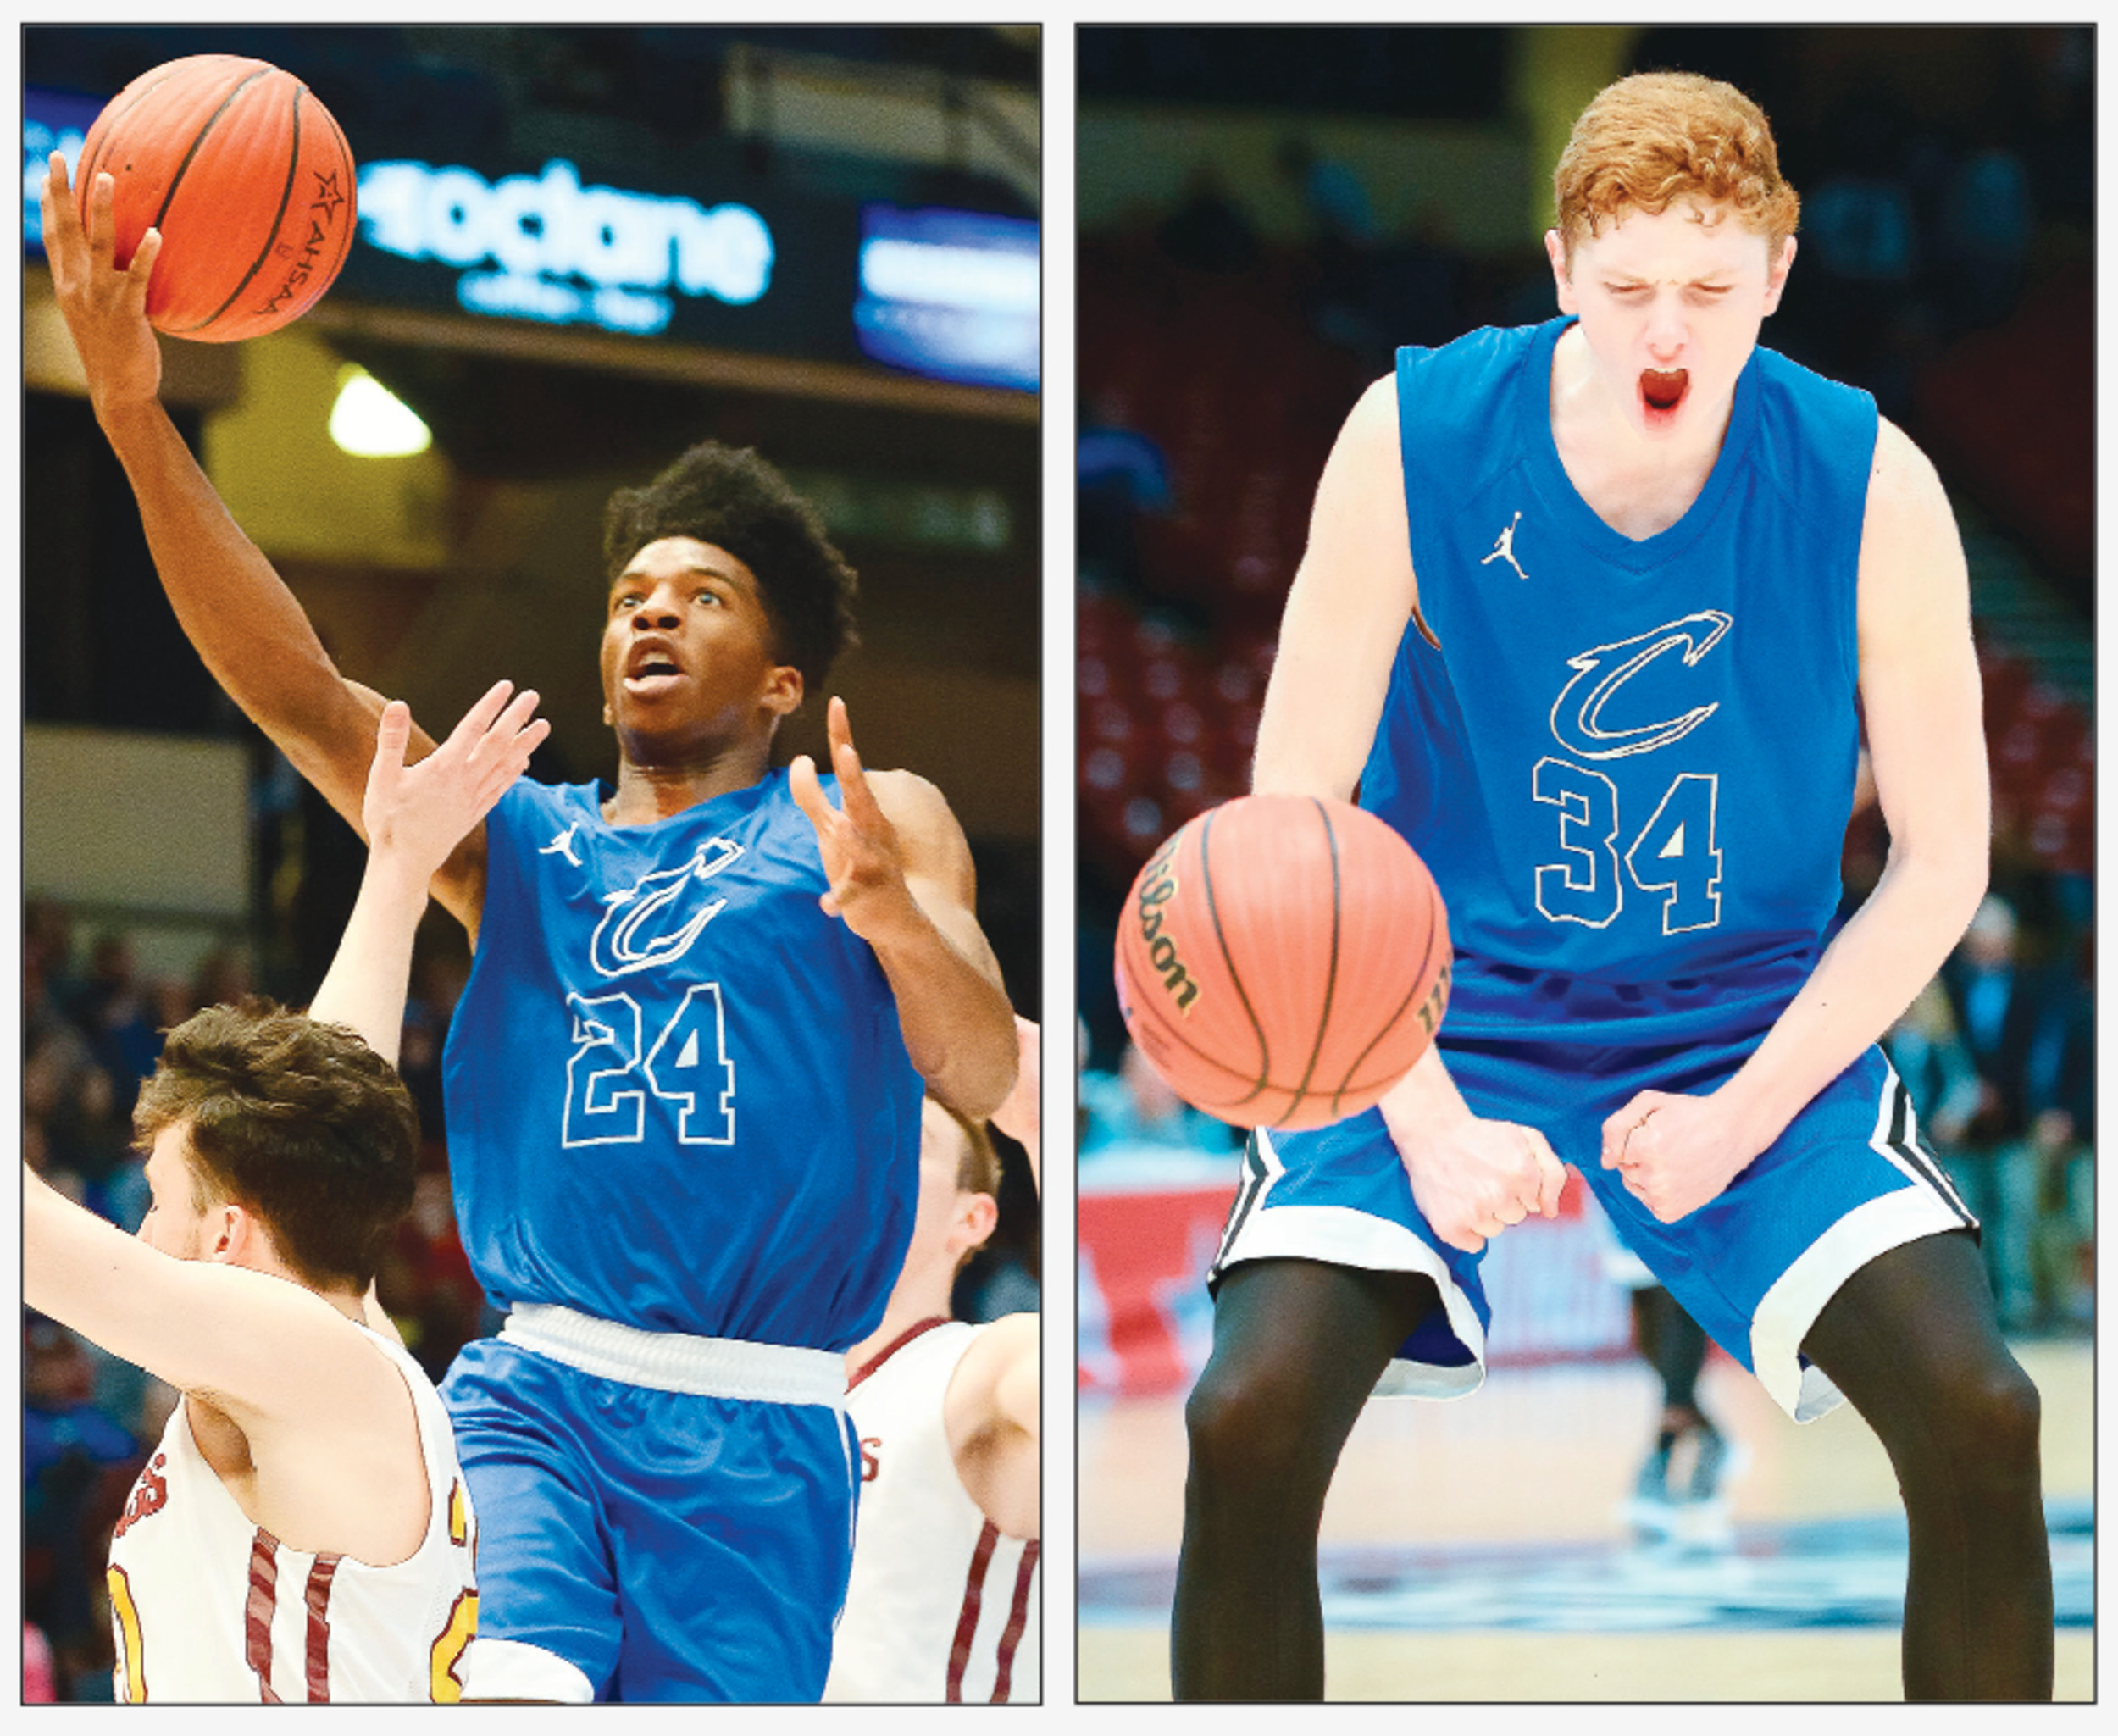 Cordova's Isaac Chatman, left, and Jayce Willingham, right, led the Blue Devils to the school's first ever state basketball championship last month at the BJCC.